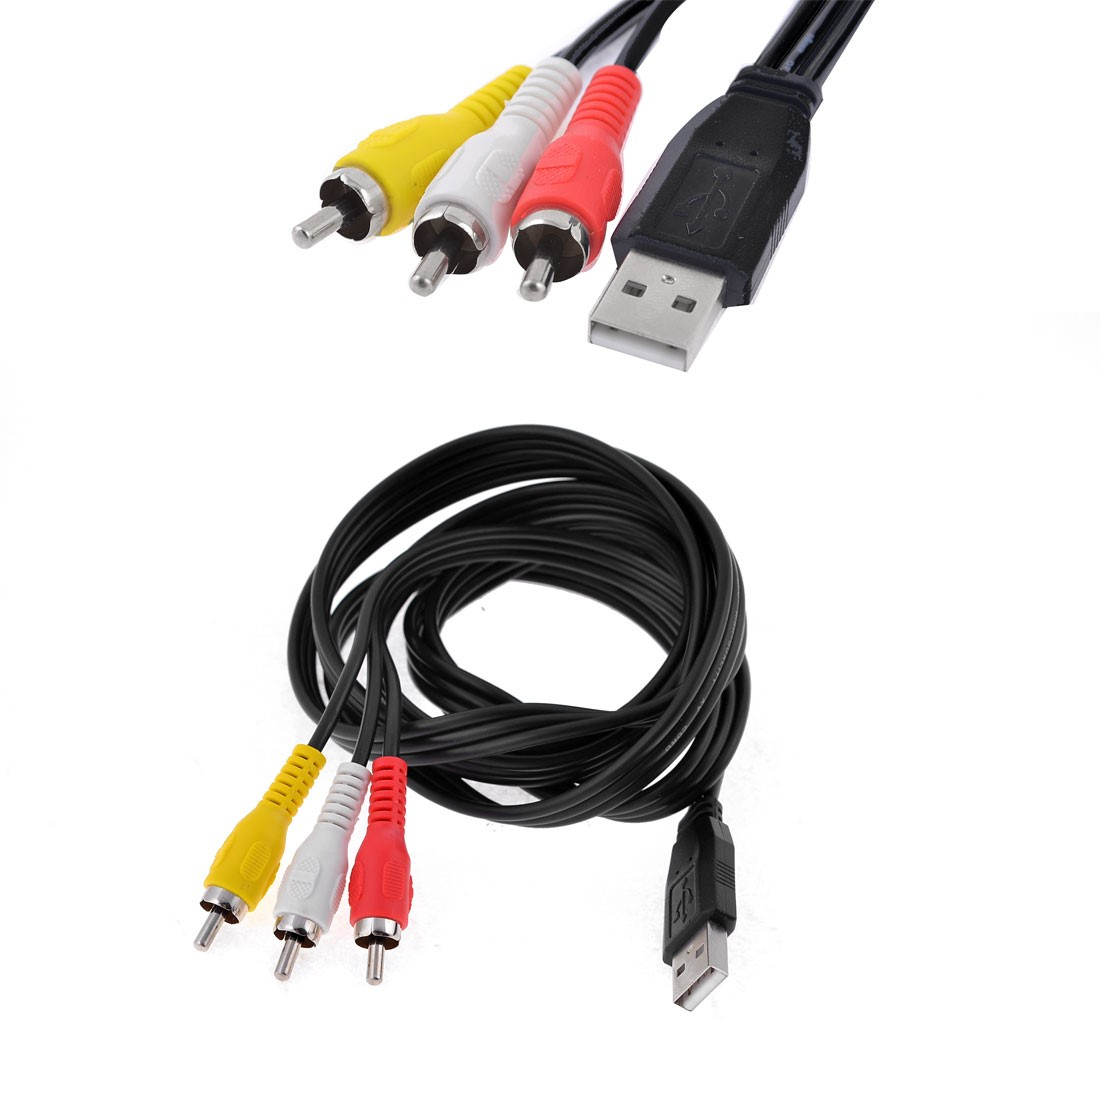 Unique Bargains USB Male to 3 RCA Male Adapter AV Componen Cord Black for VCR